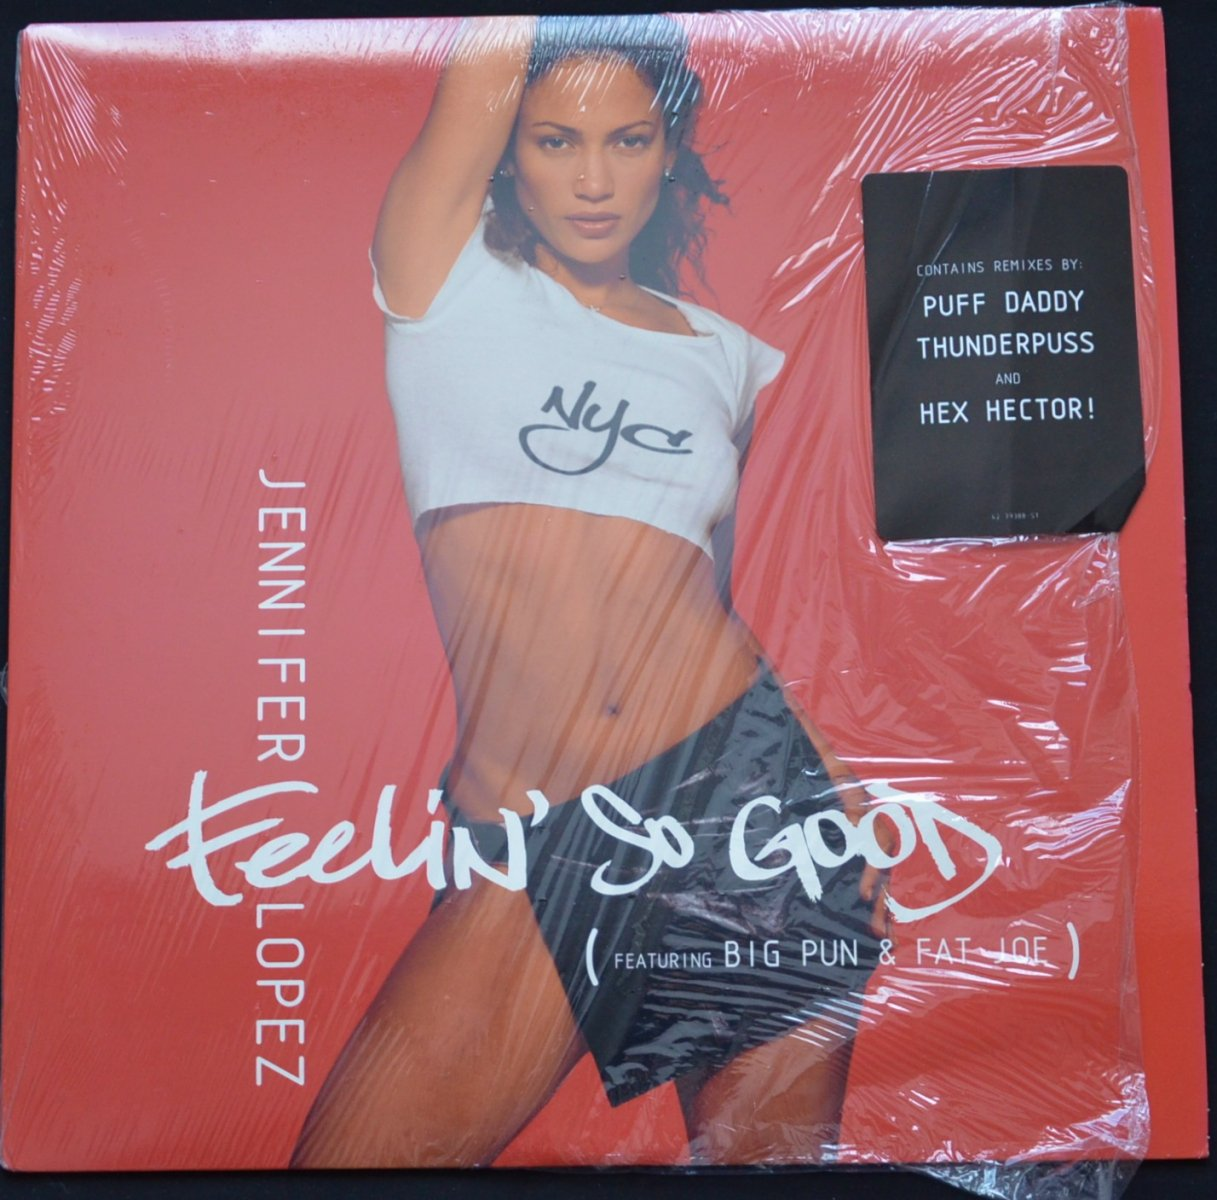 JENNIFER LOPEZ FEATURING BIG PUN & FAT JOE ‎/ FEELIN' SO GOOD (12